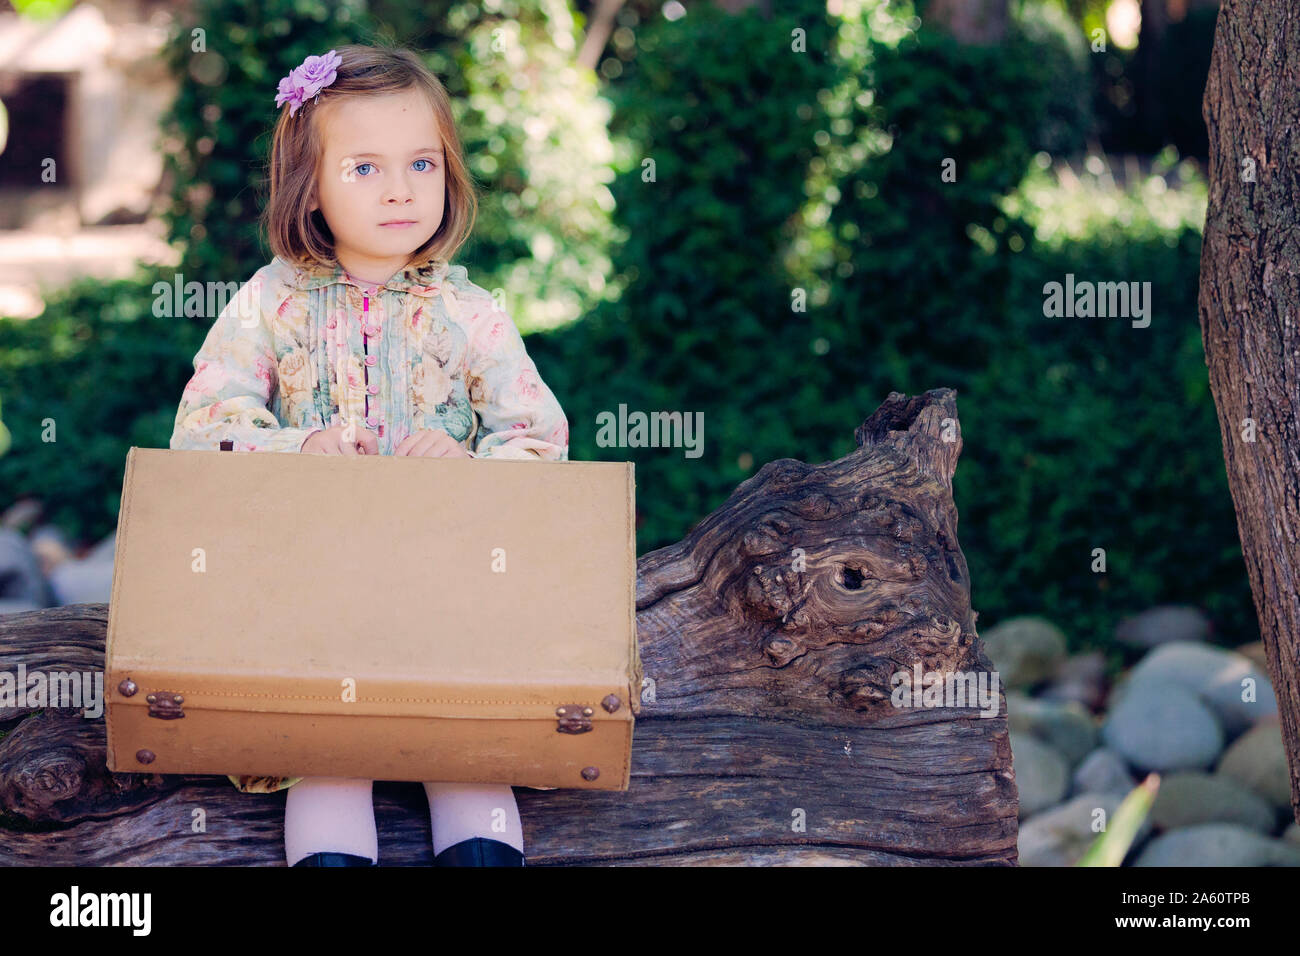 Portrait of little girl sitting on deadwood with leather suitcase Stock Photo